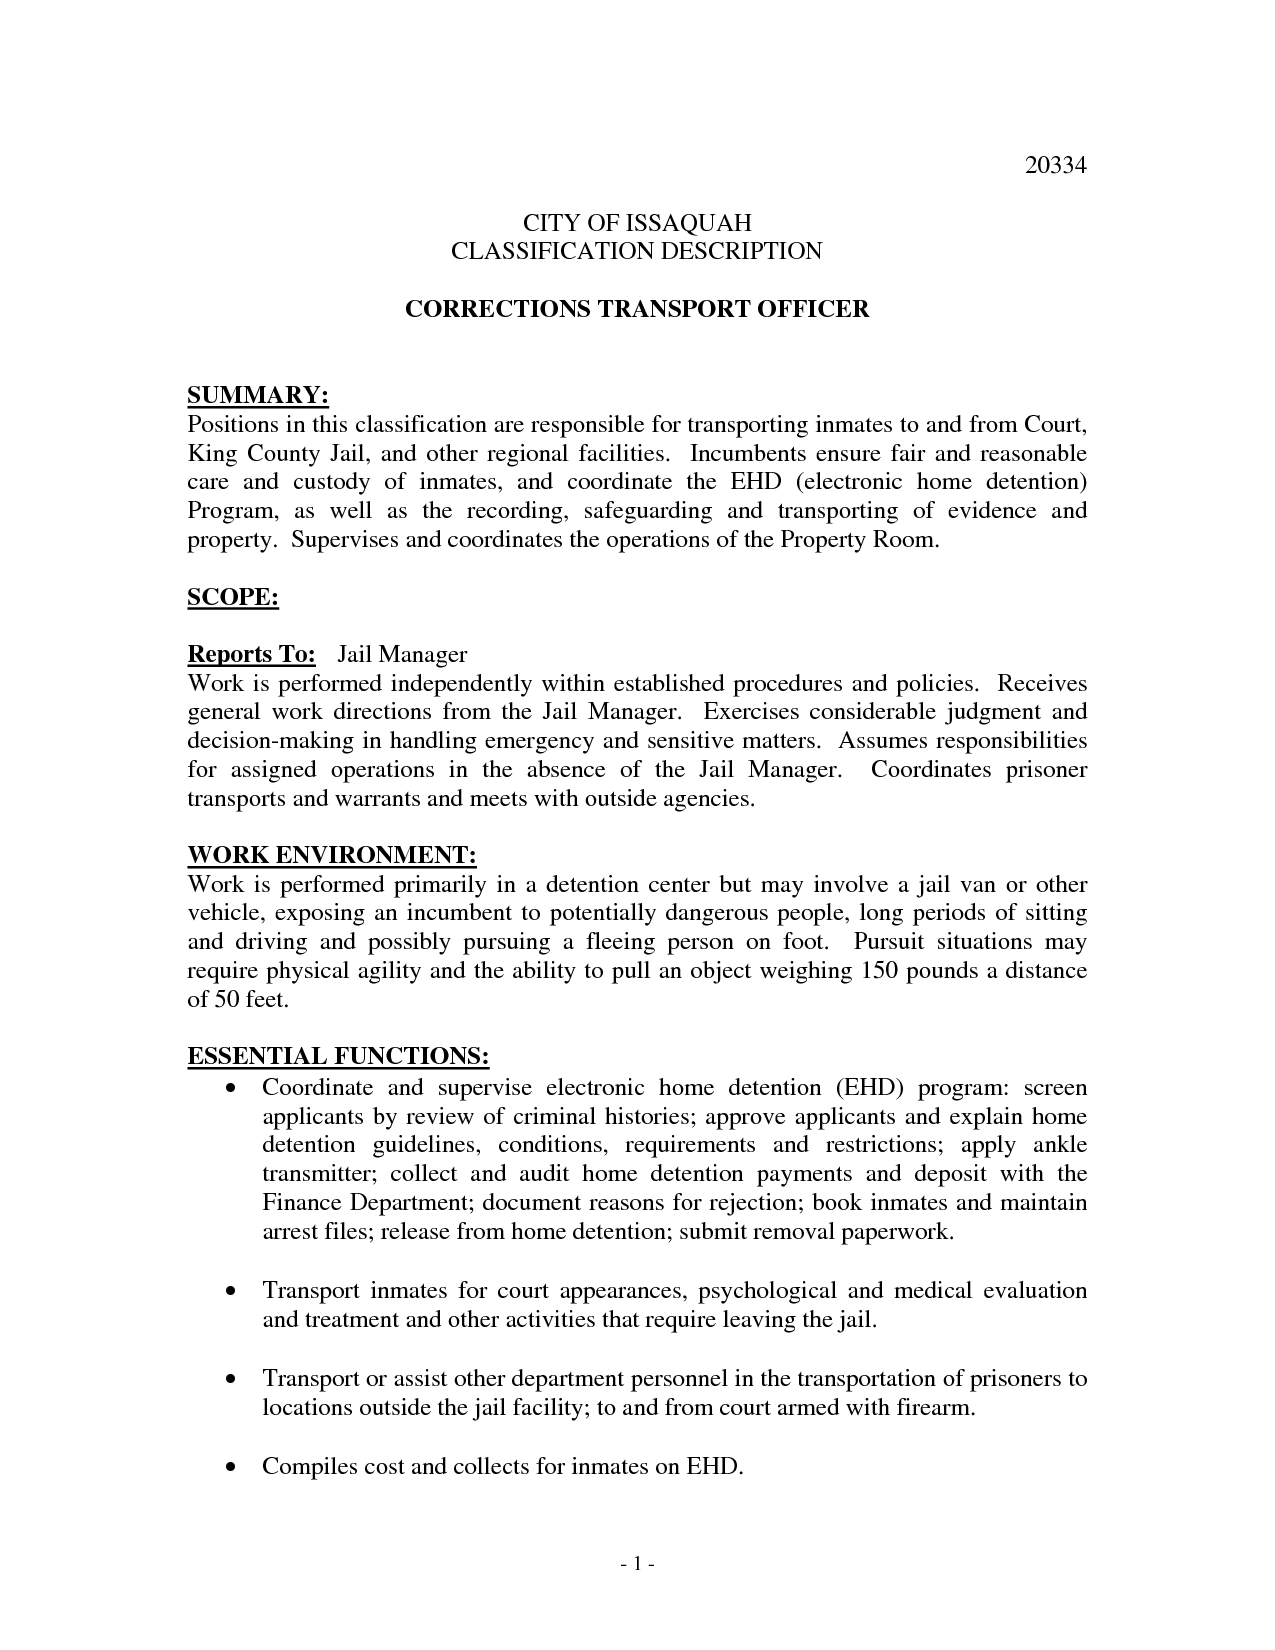 Sample Resume For Police Officer With No Experience Correctional Officer Resume No Experience Http Www